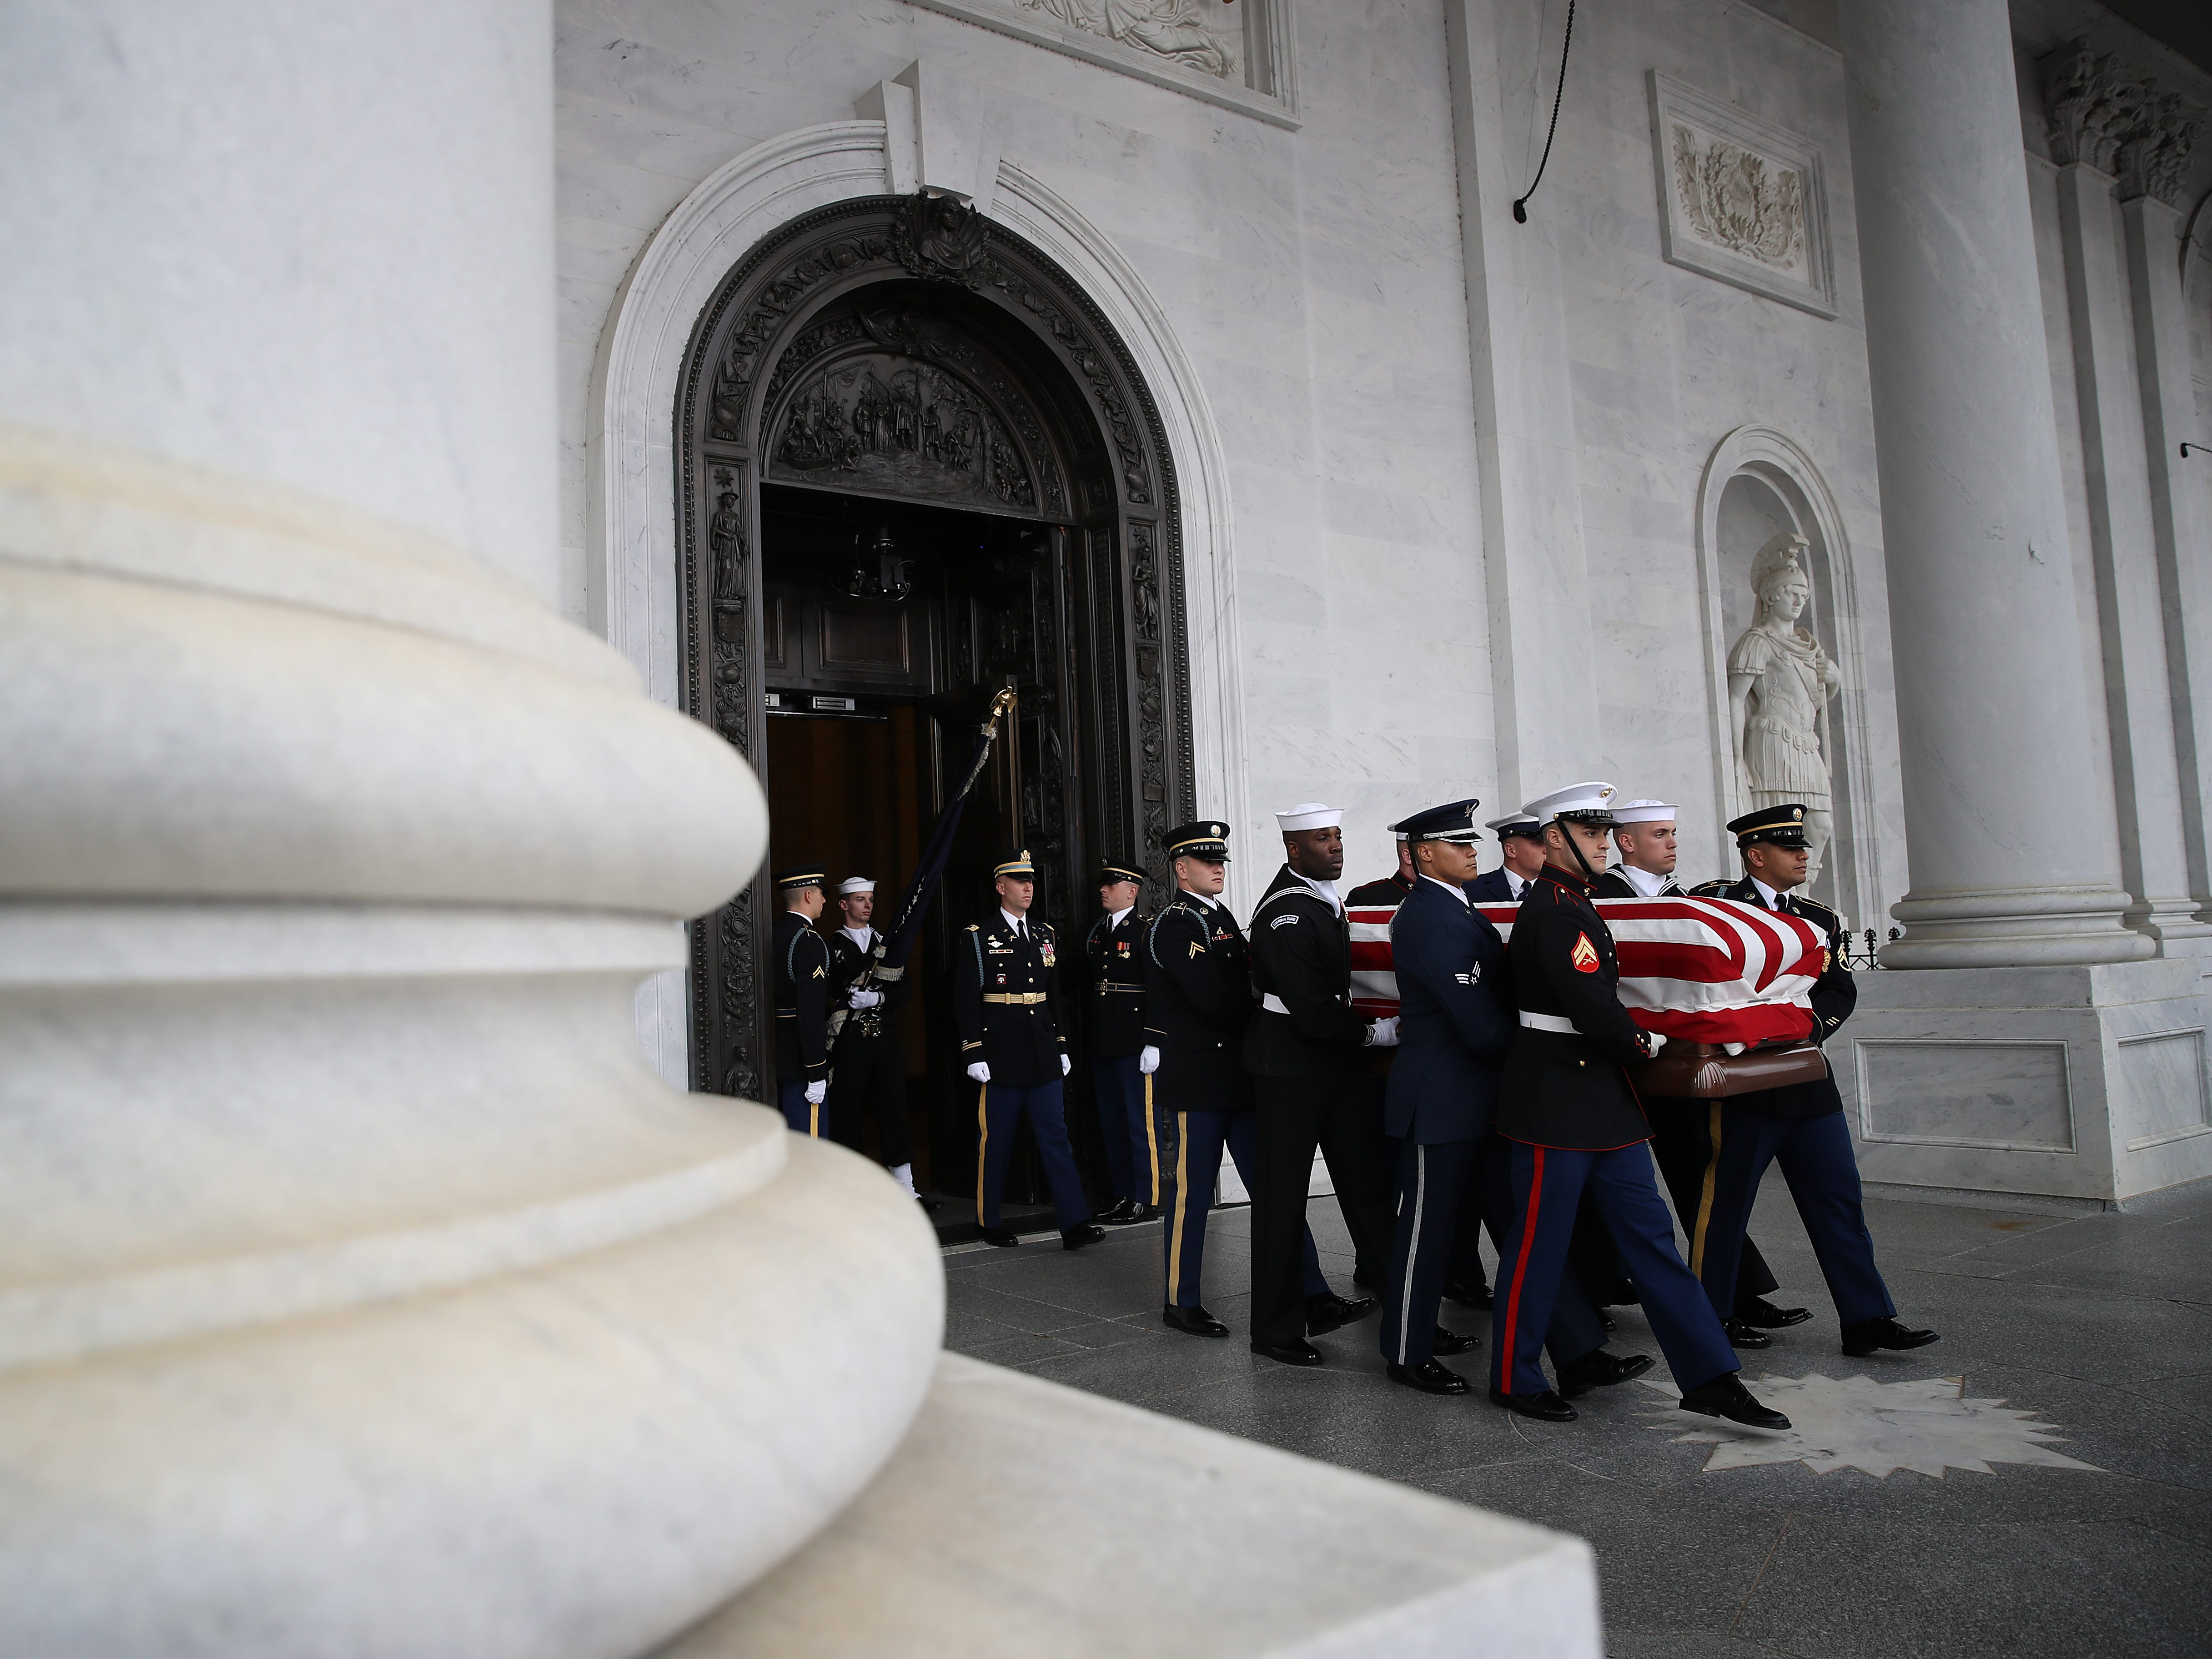 A U.S. military honor guard team carries the flag draped casket of former President George H.W. Bush from the U.S. Capitol, Dec. 5, 2018, in Washington.